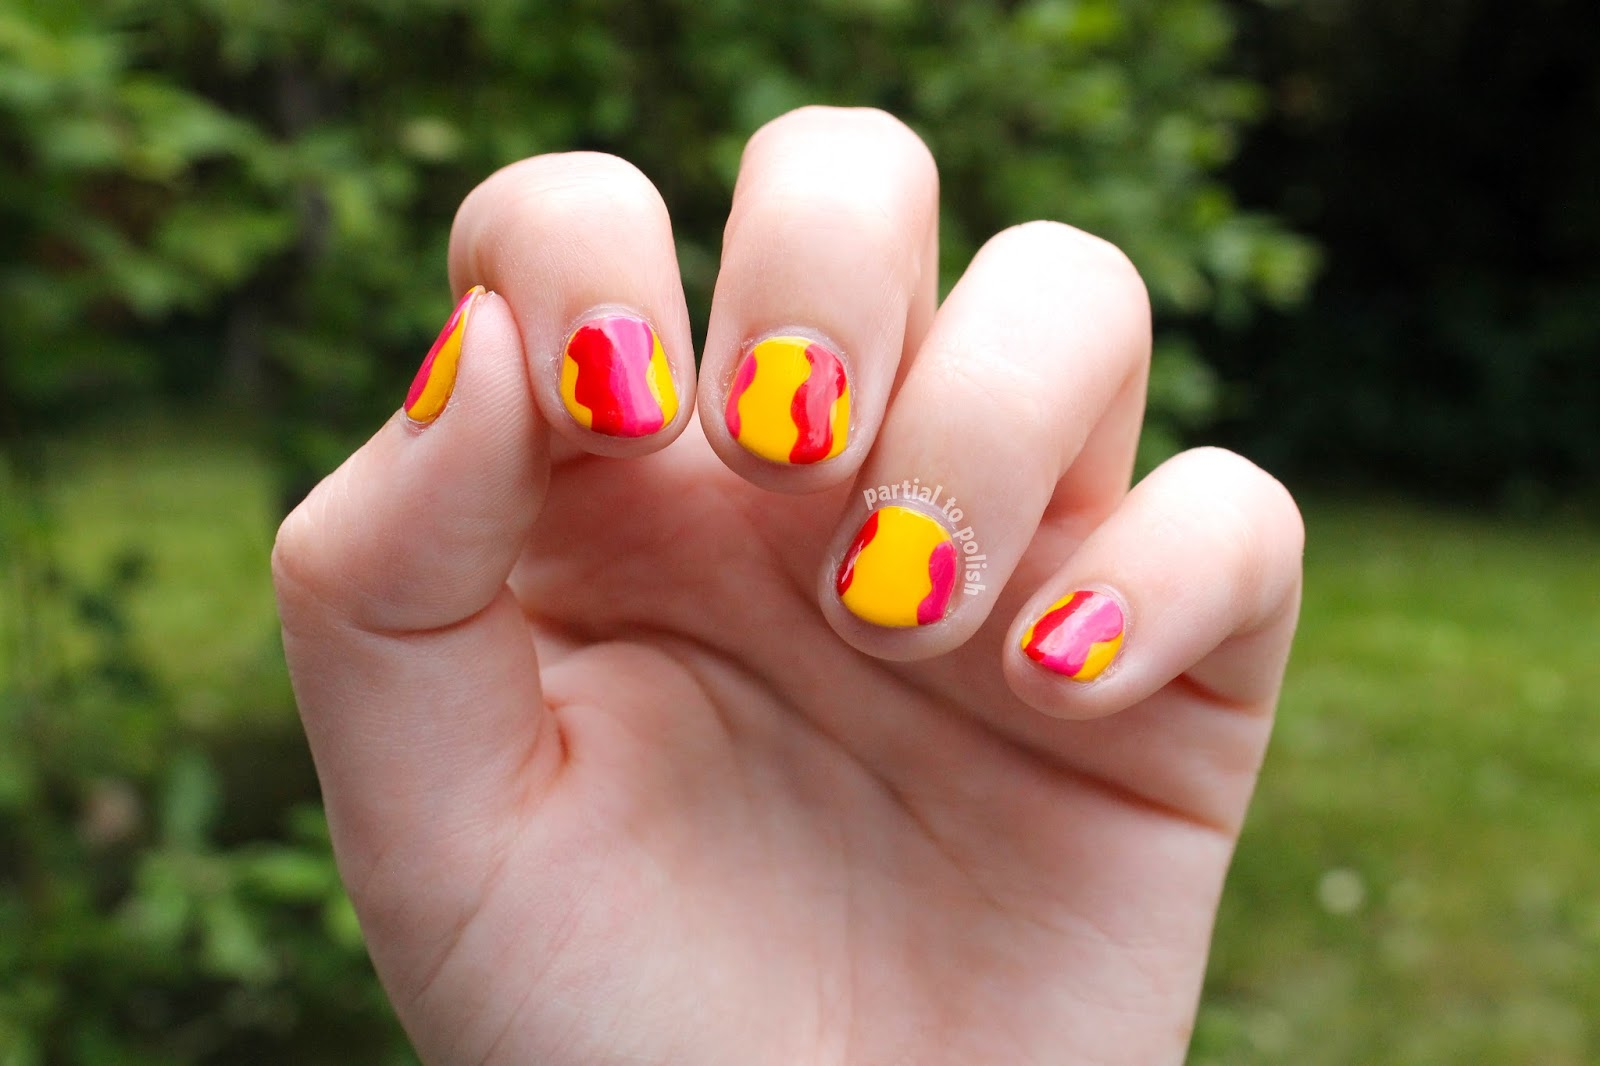 Partial To Polish Bright Warm Toned Squiggly Nail Art Featuring